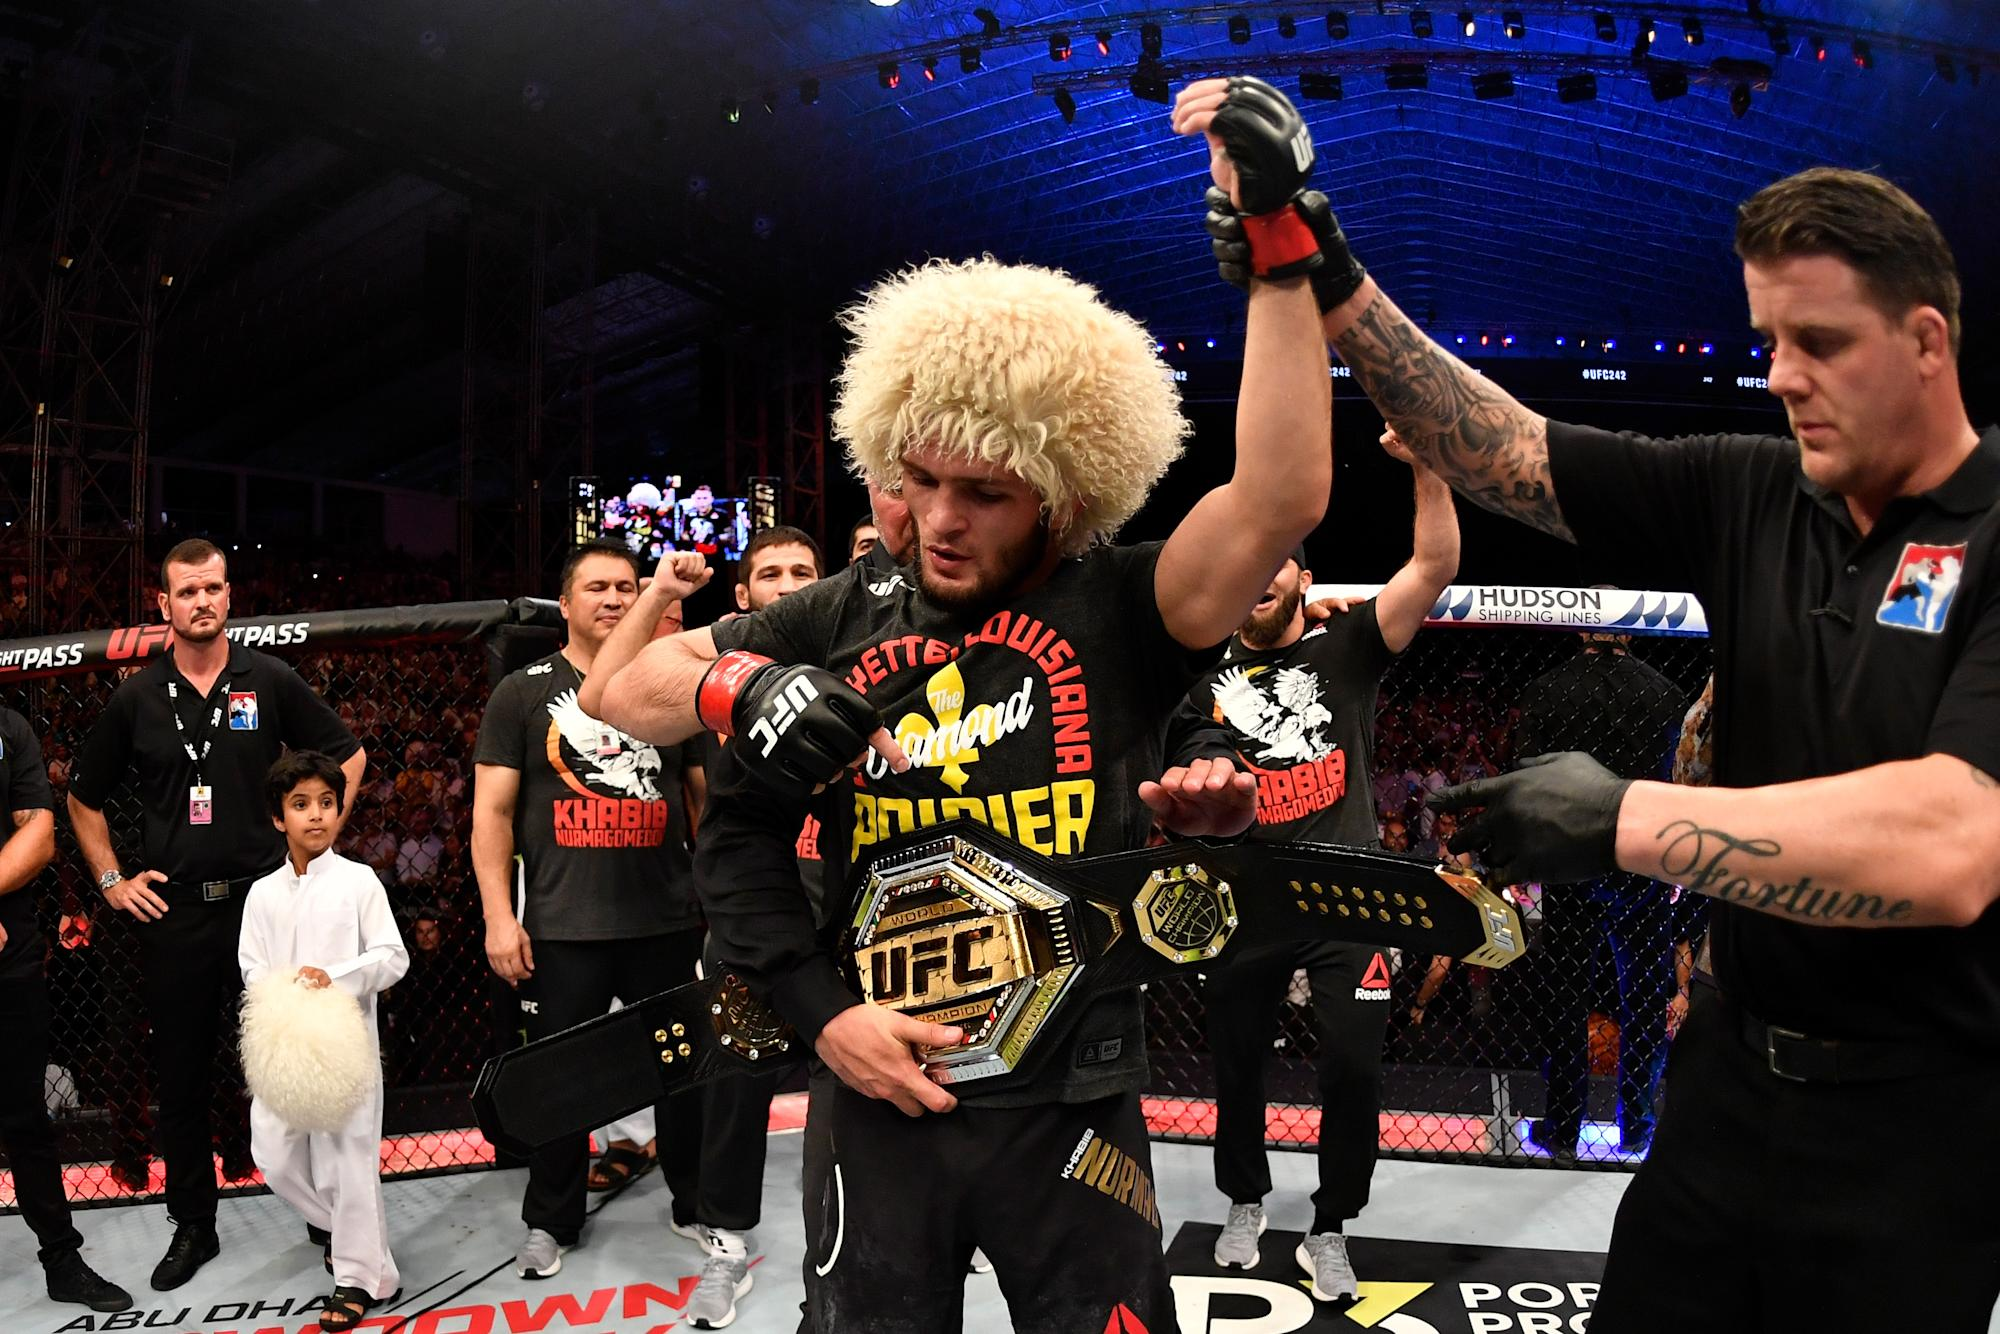 Khabib Nurmagomedov Makes Strong Case For Ufc S No 1 Pound For Pound Fighter